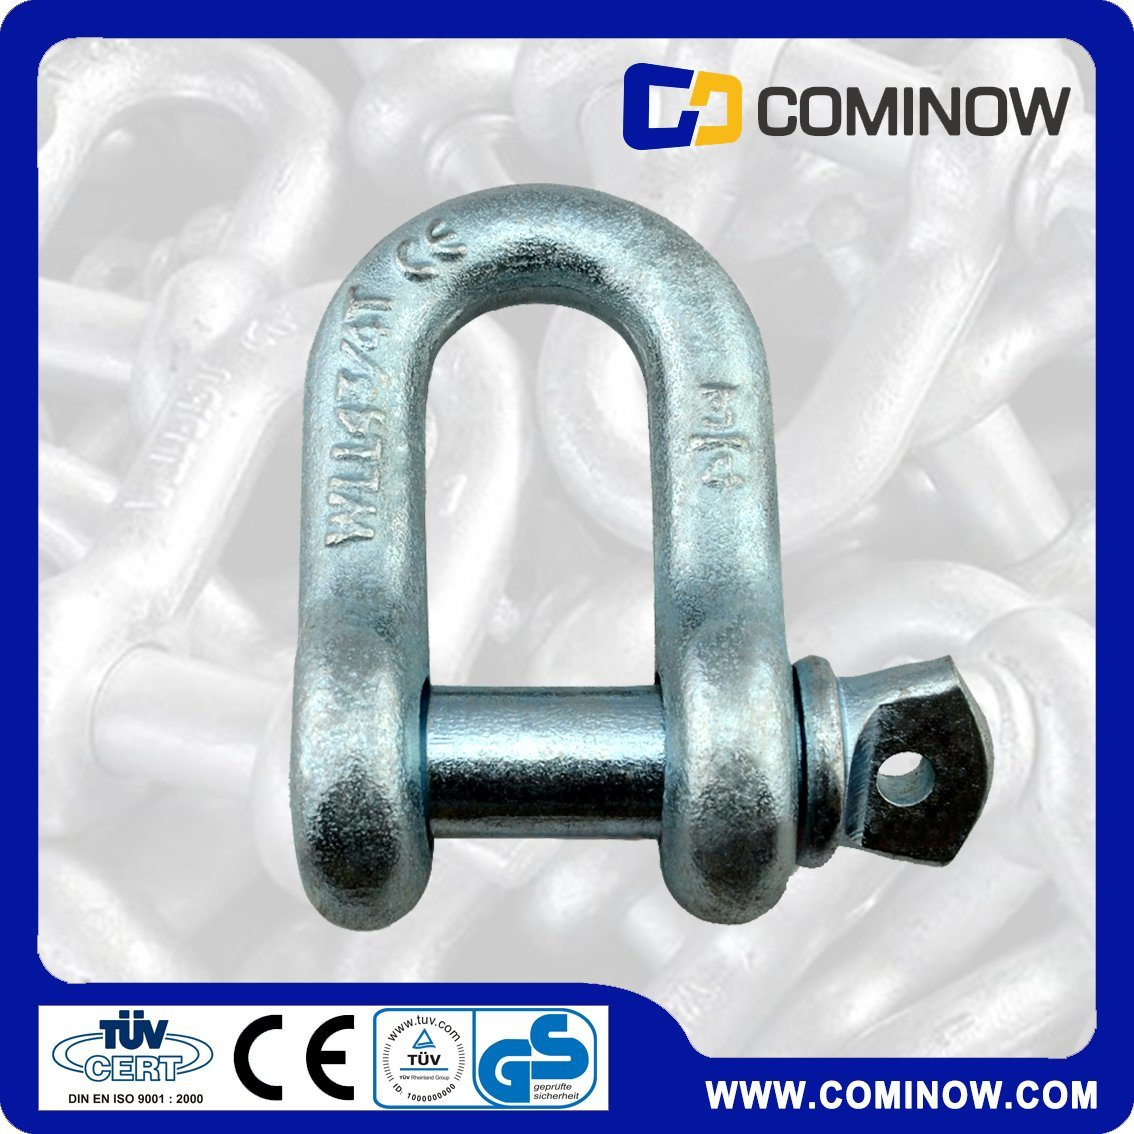 Us Type G210 Screw Pin Anchor Shackle / Us Type Dee Shackle / High Tension Dee Shackle